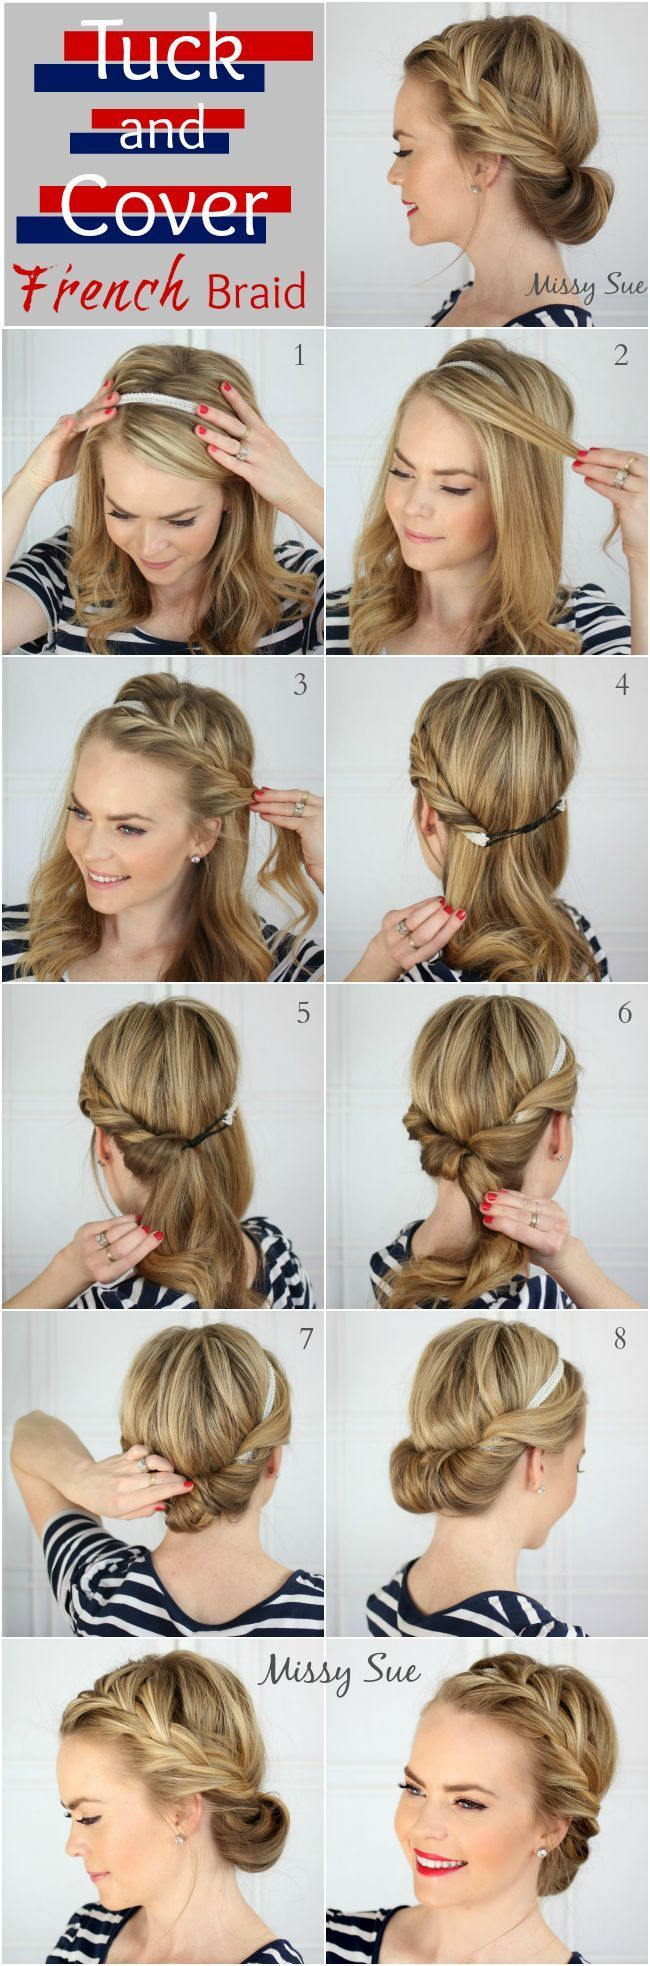 This could be fun to try, but I bet the headband wouldn't stay. Tuck and cover french braid